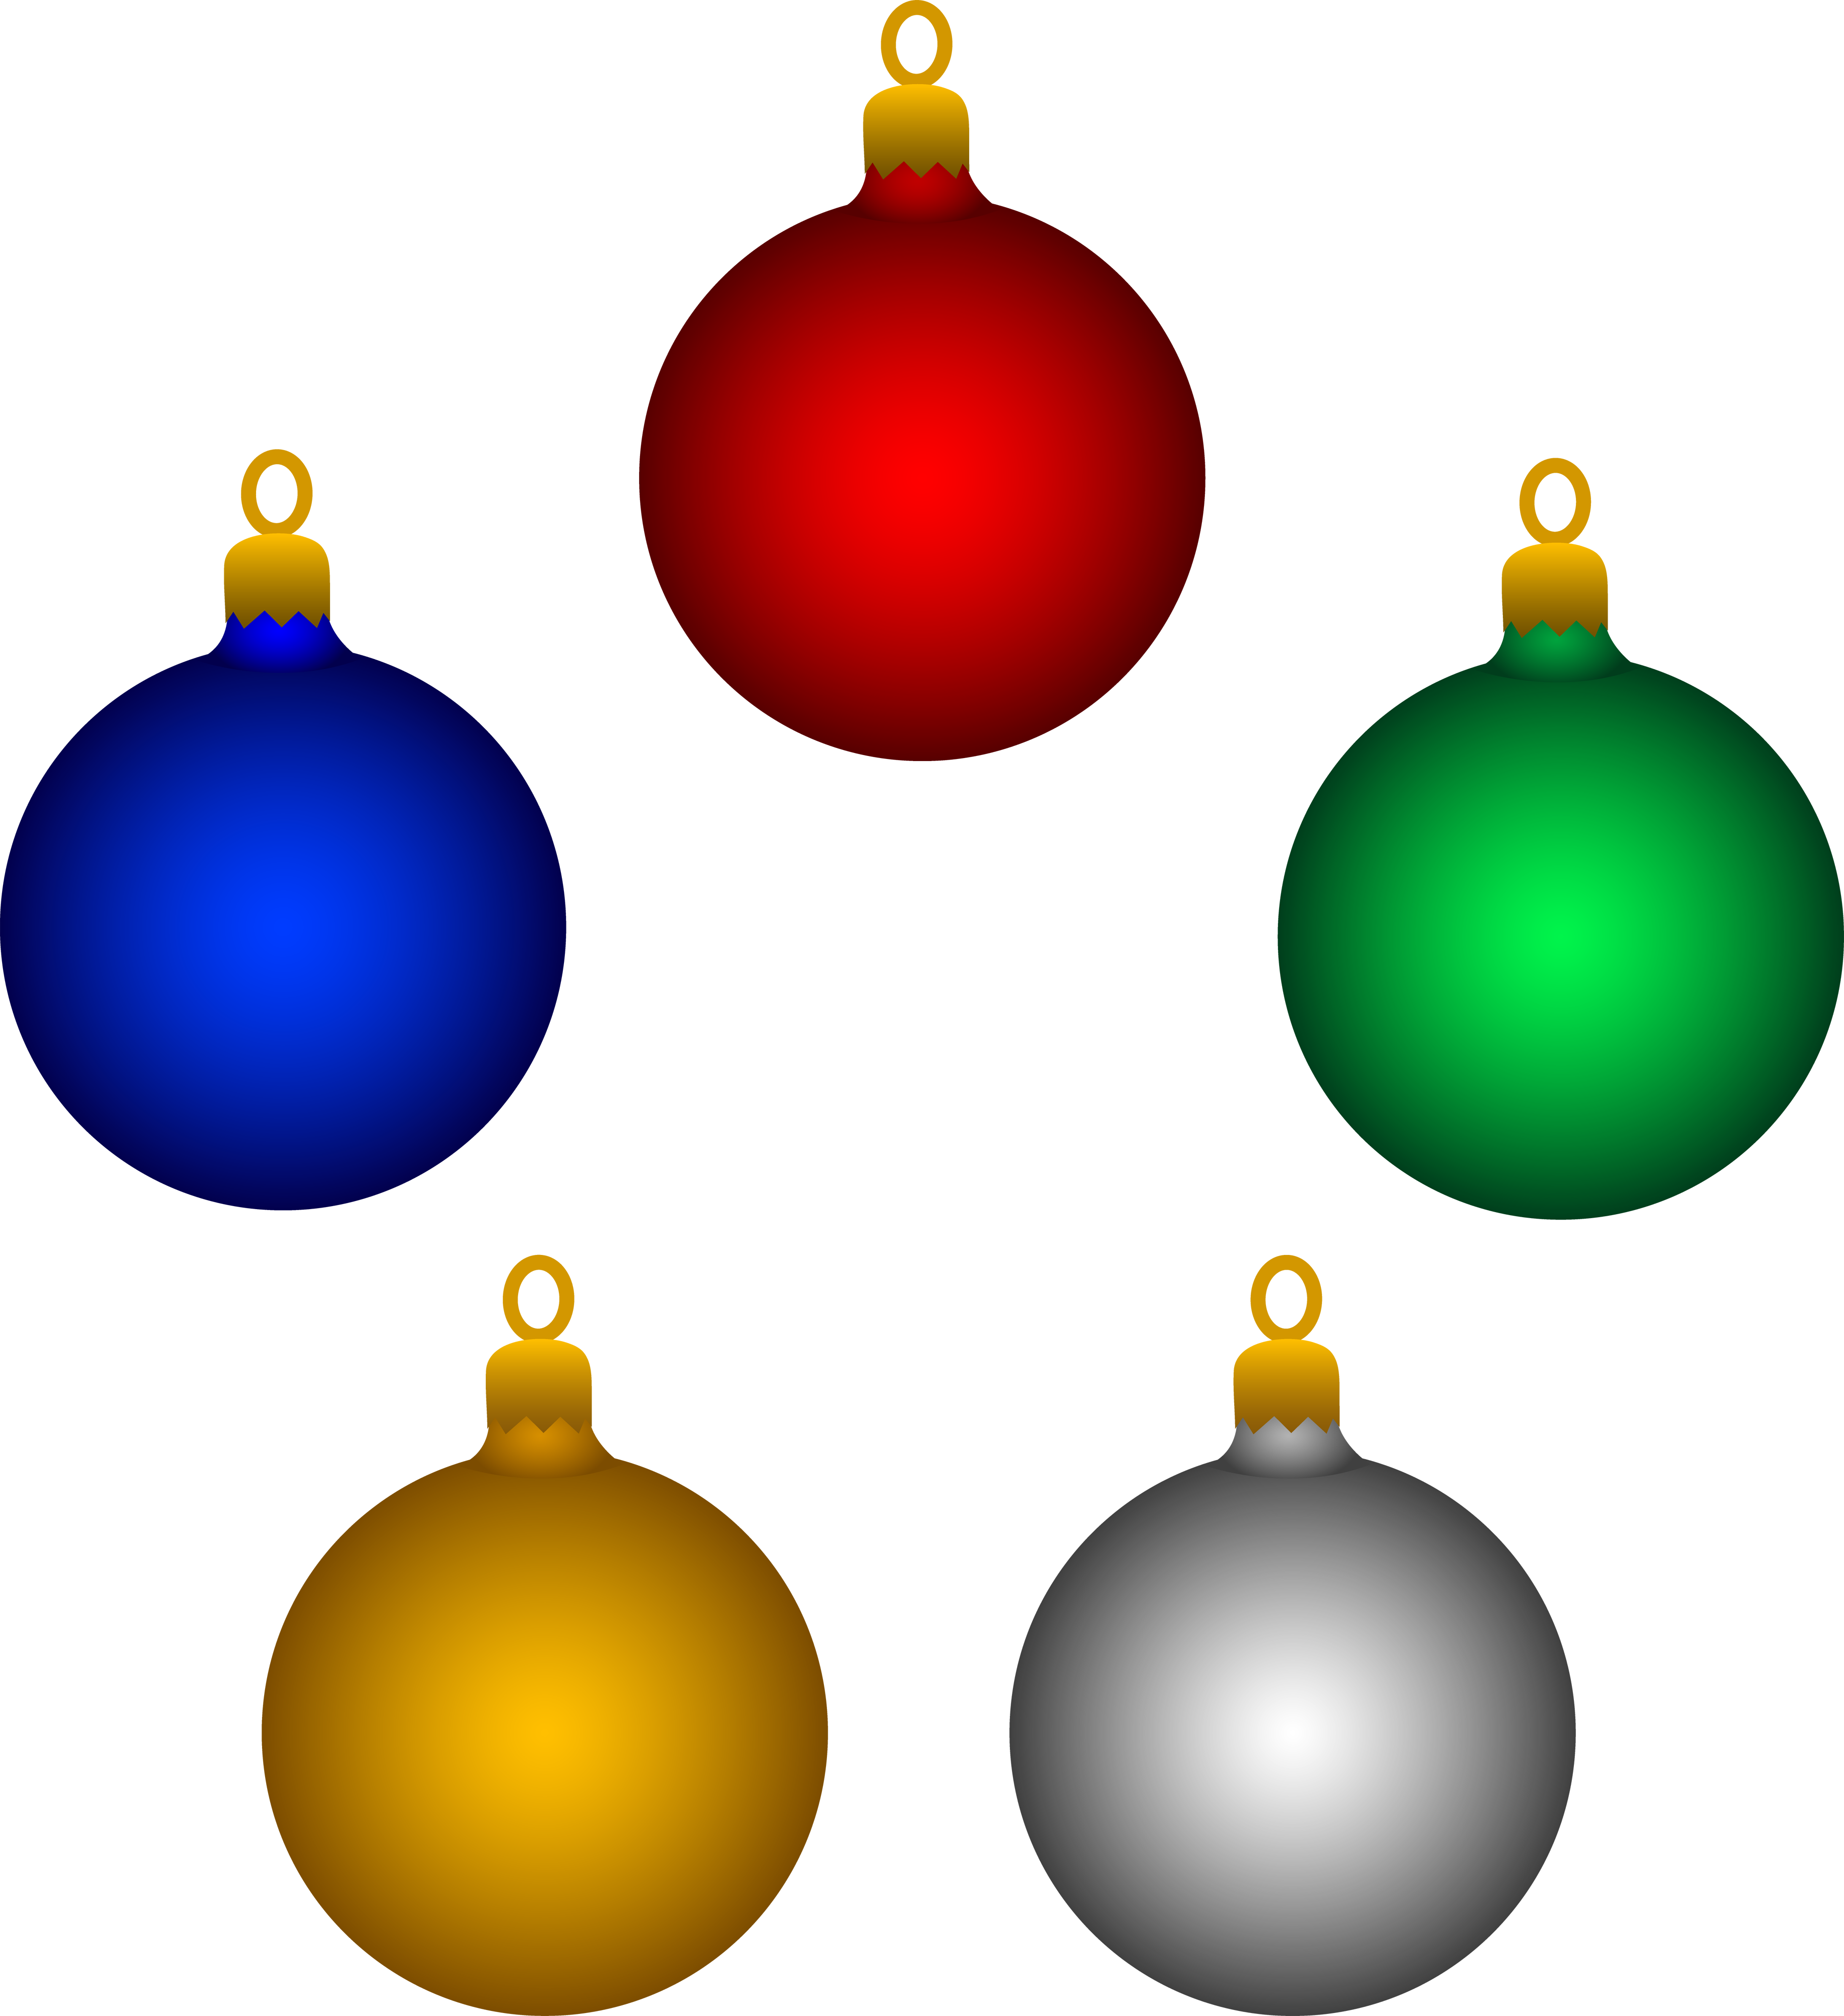 clip download Christmas panda free images. Decorations clipart holiday ornament.